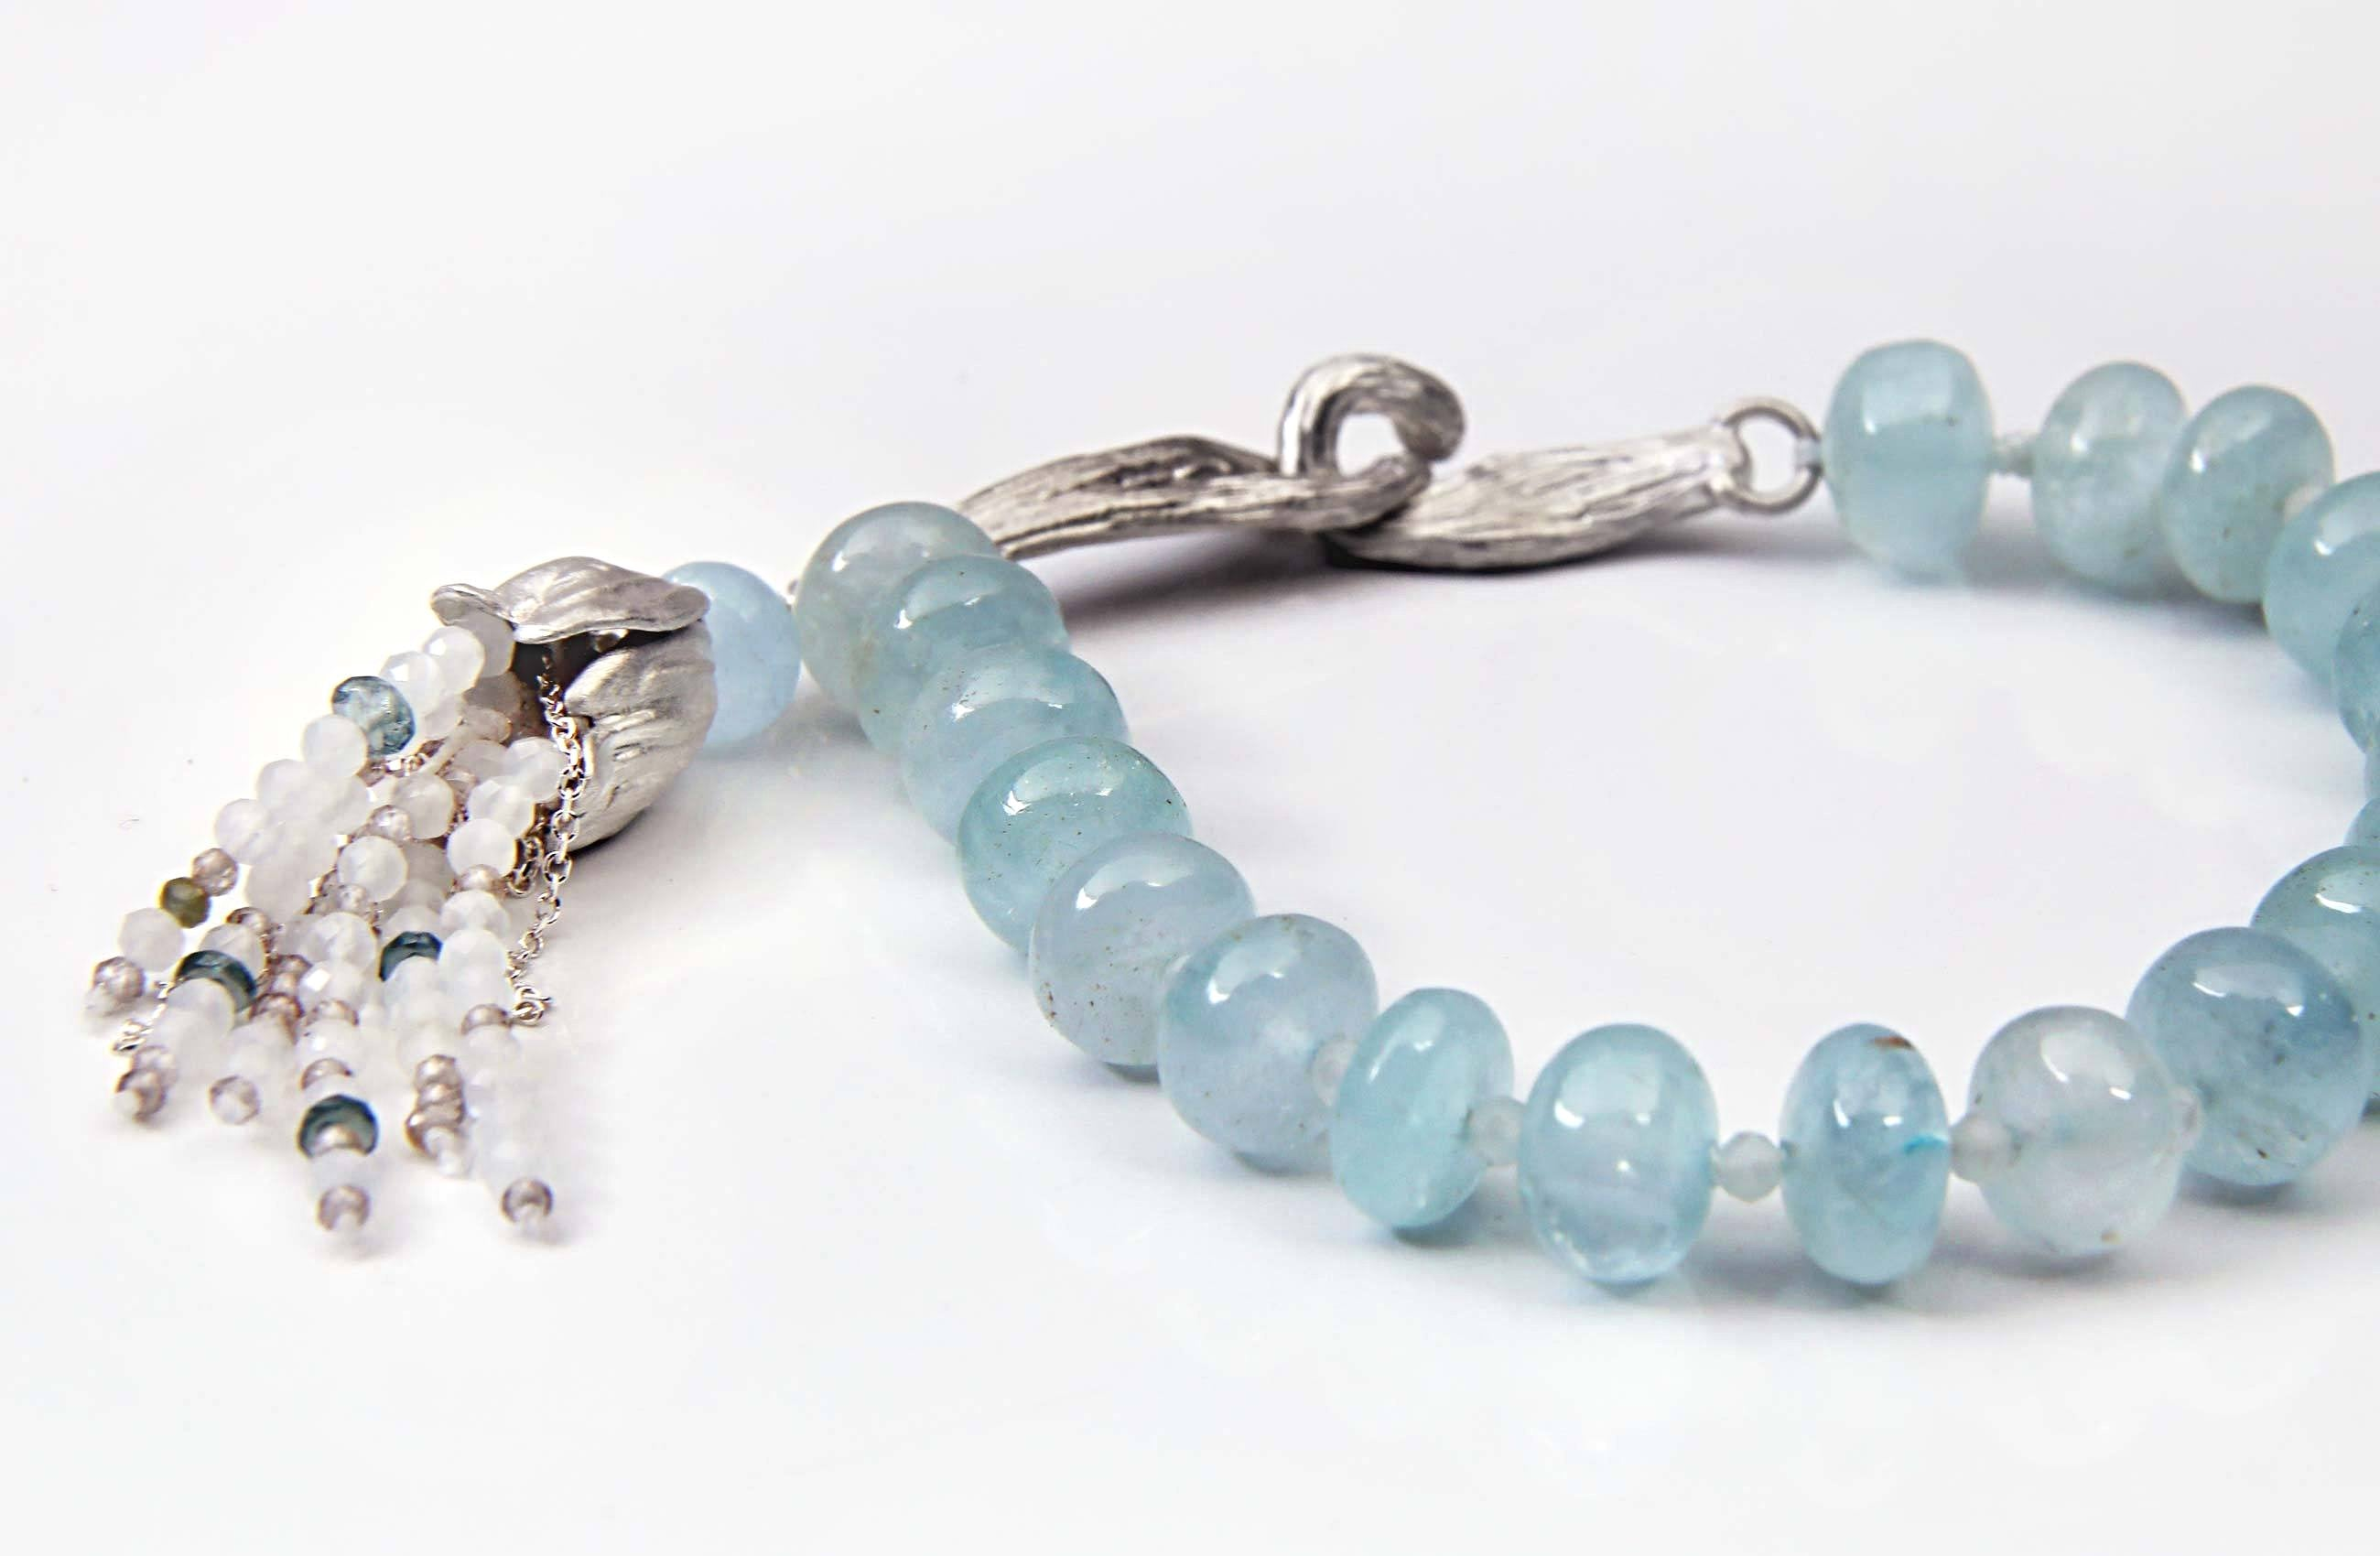 "White Orchid Studios | Made in the USA | Handcrafted couture jewelry inspired by nature. |  Polished aqua rondelles, faceted moonstone spacers and tassels are enhanced by our sterling bead cap and signature, vanilla bean clasp, 6.75"" $608"